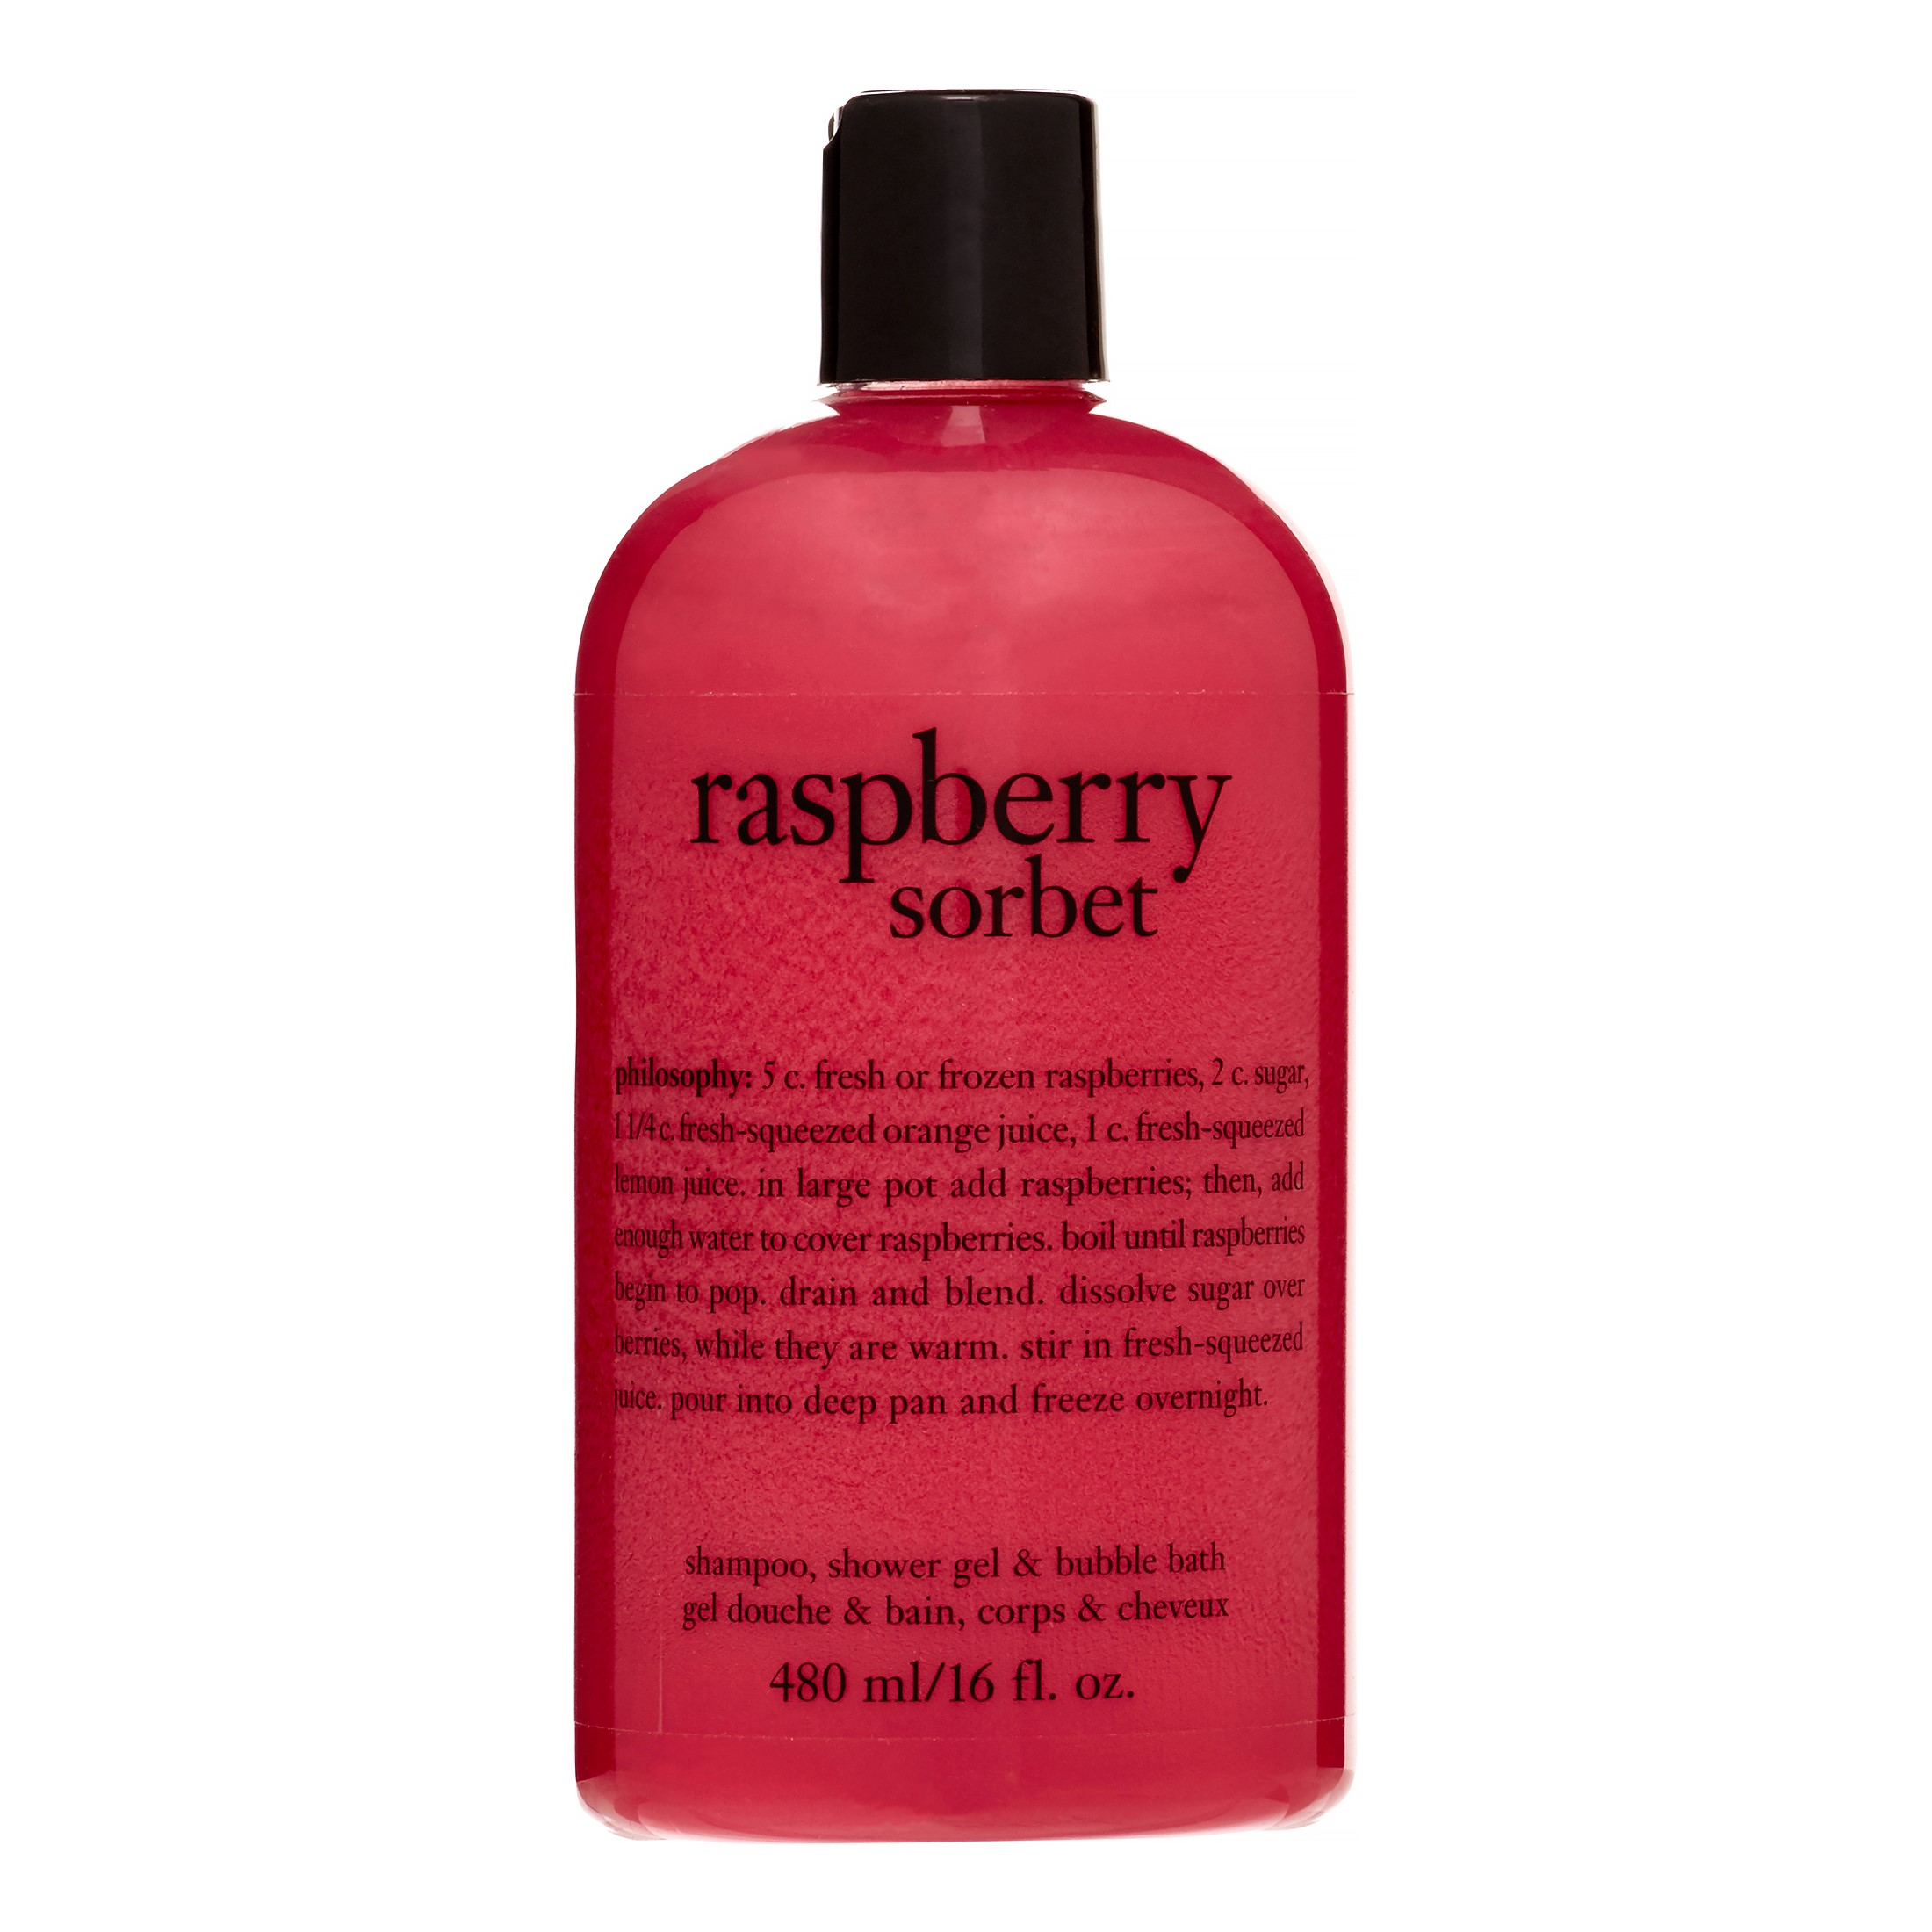 Raspberry Sorbet 3 in 1 Shampoo, Shower Gel & Bubble Bath, 16 Oz